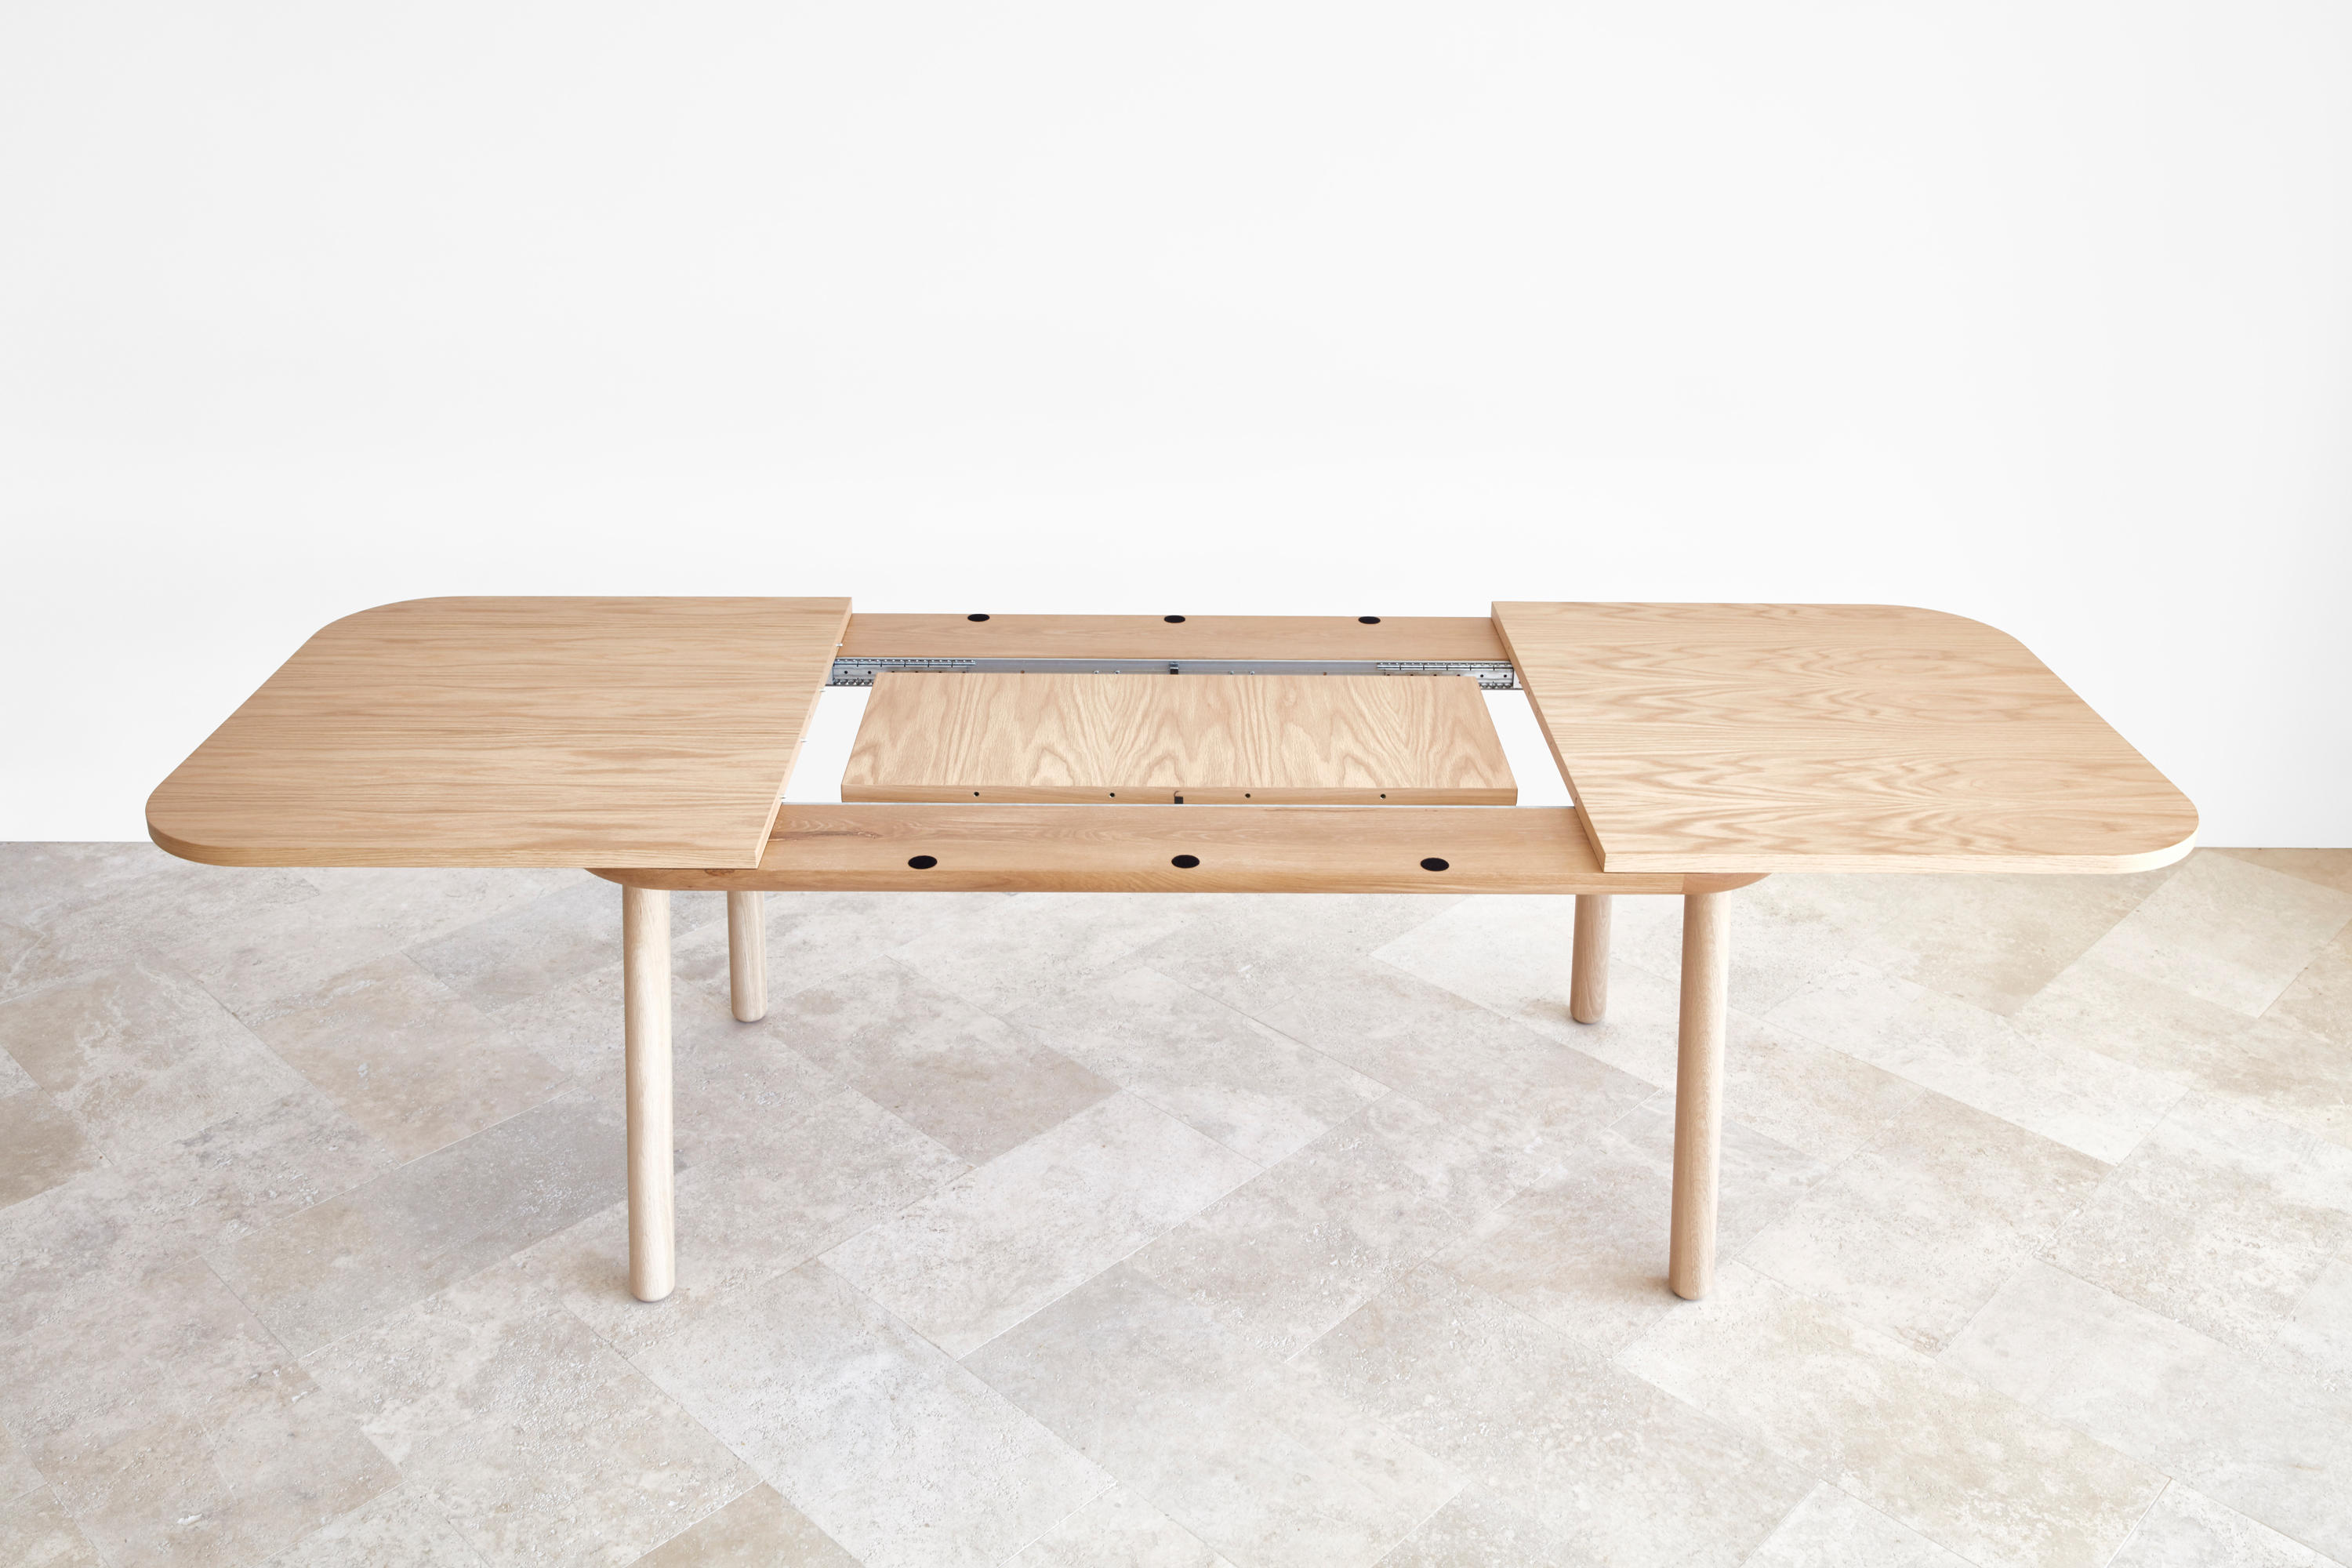 ... Baker Extension Table By DesignByThem ...